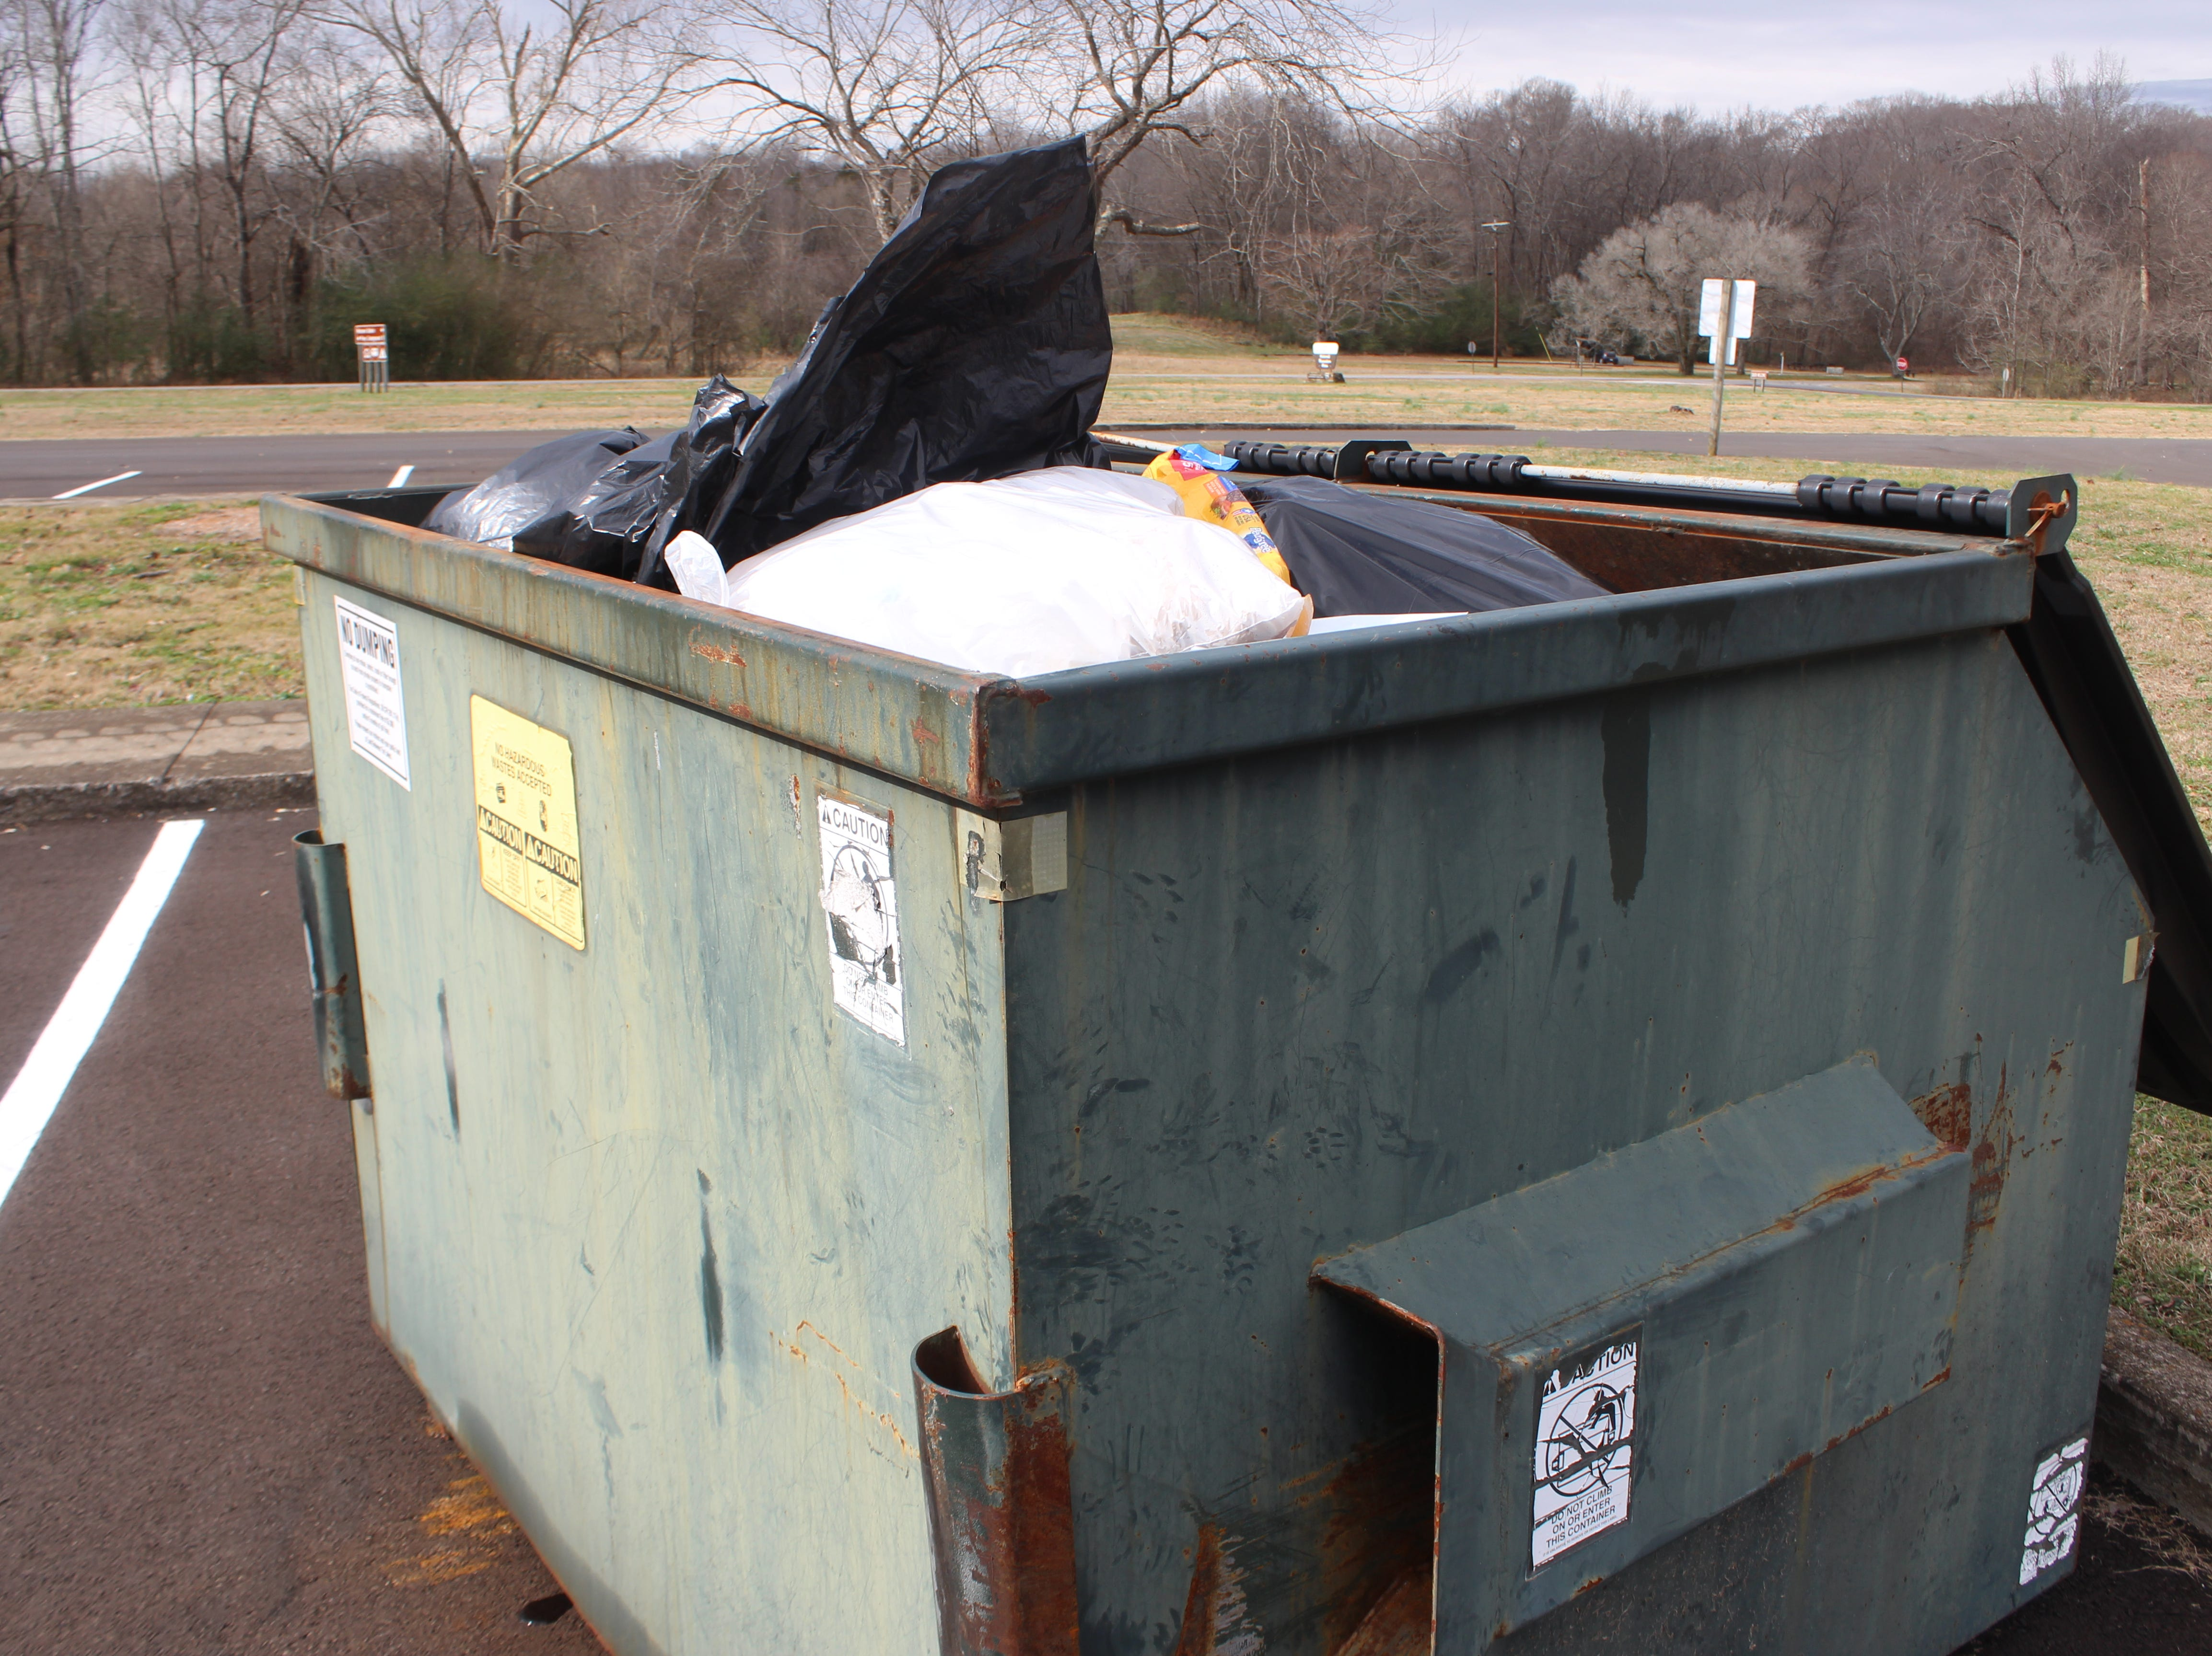 A dumpster at the South Welcome Station at Land Between the Lakes National Recreation Area is filled to the top as the government shutdown rolls into its third week.